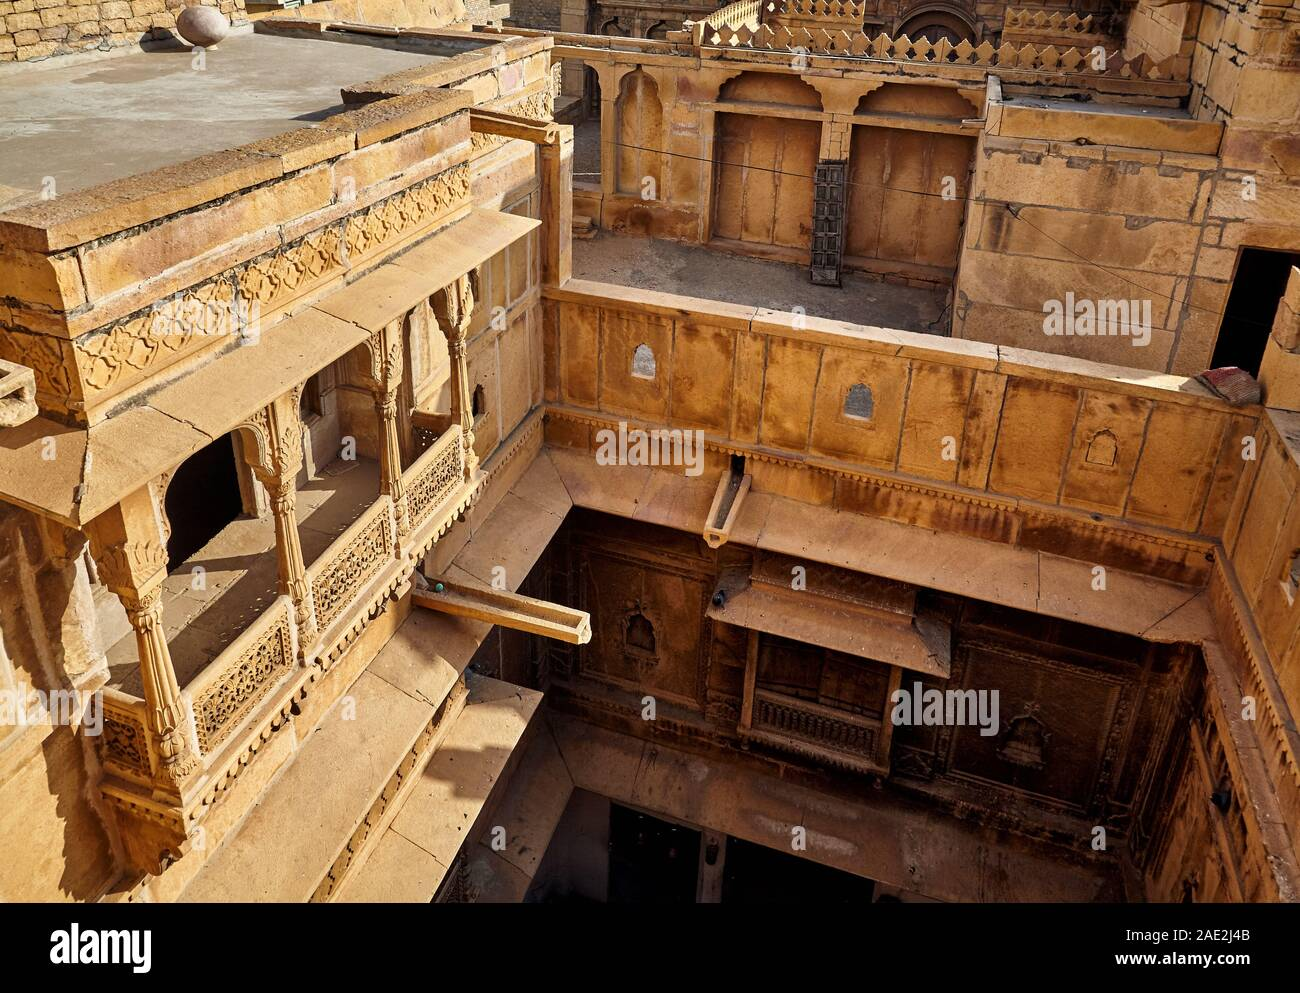 Architecture of old Haveli view from roof top in Jaisalmer, Rajasthan, India Stock Photo